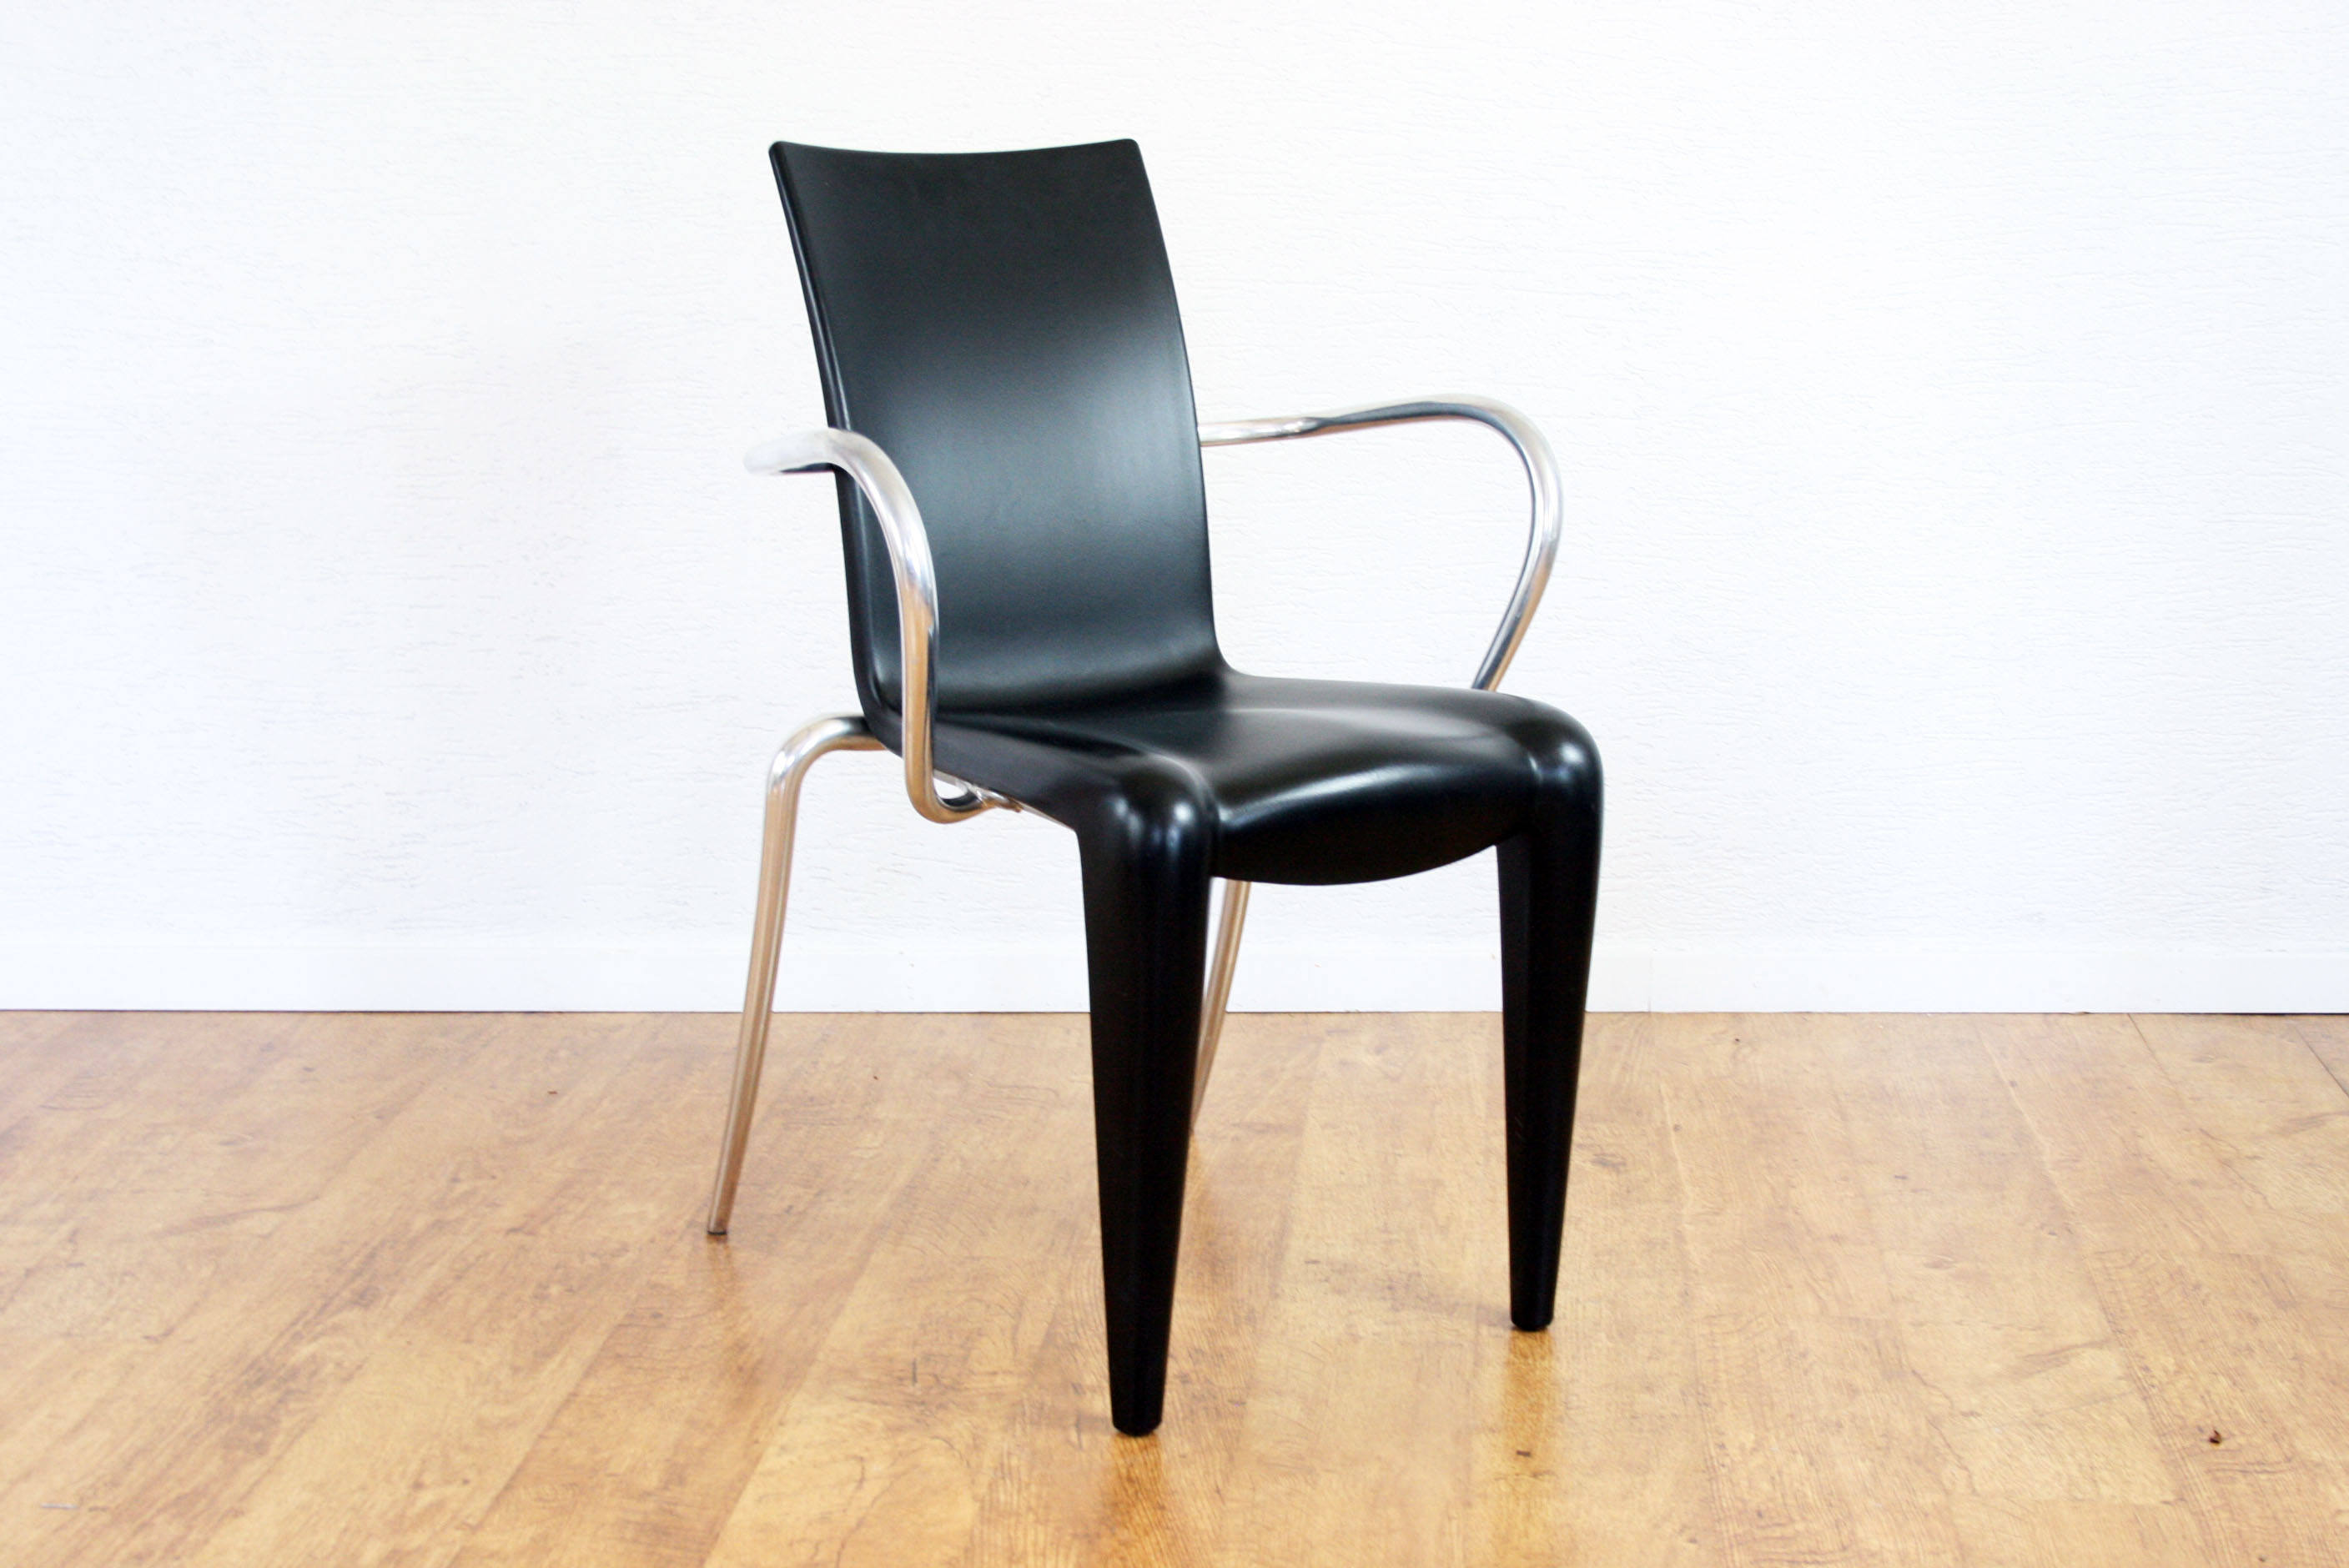 Chaises Philippe Starck Chaise Louis 20 By Starck Syn Brocante